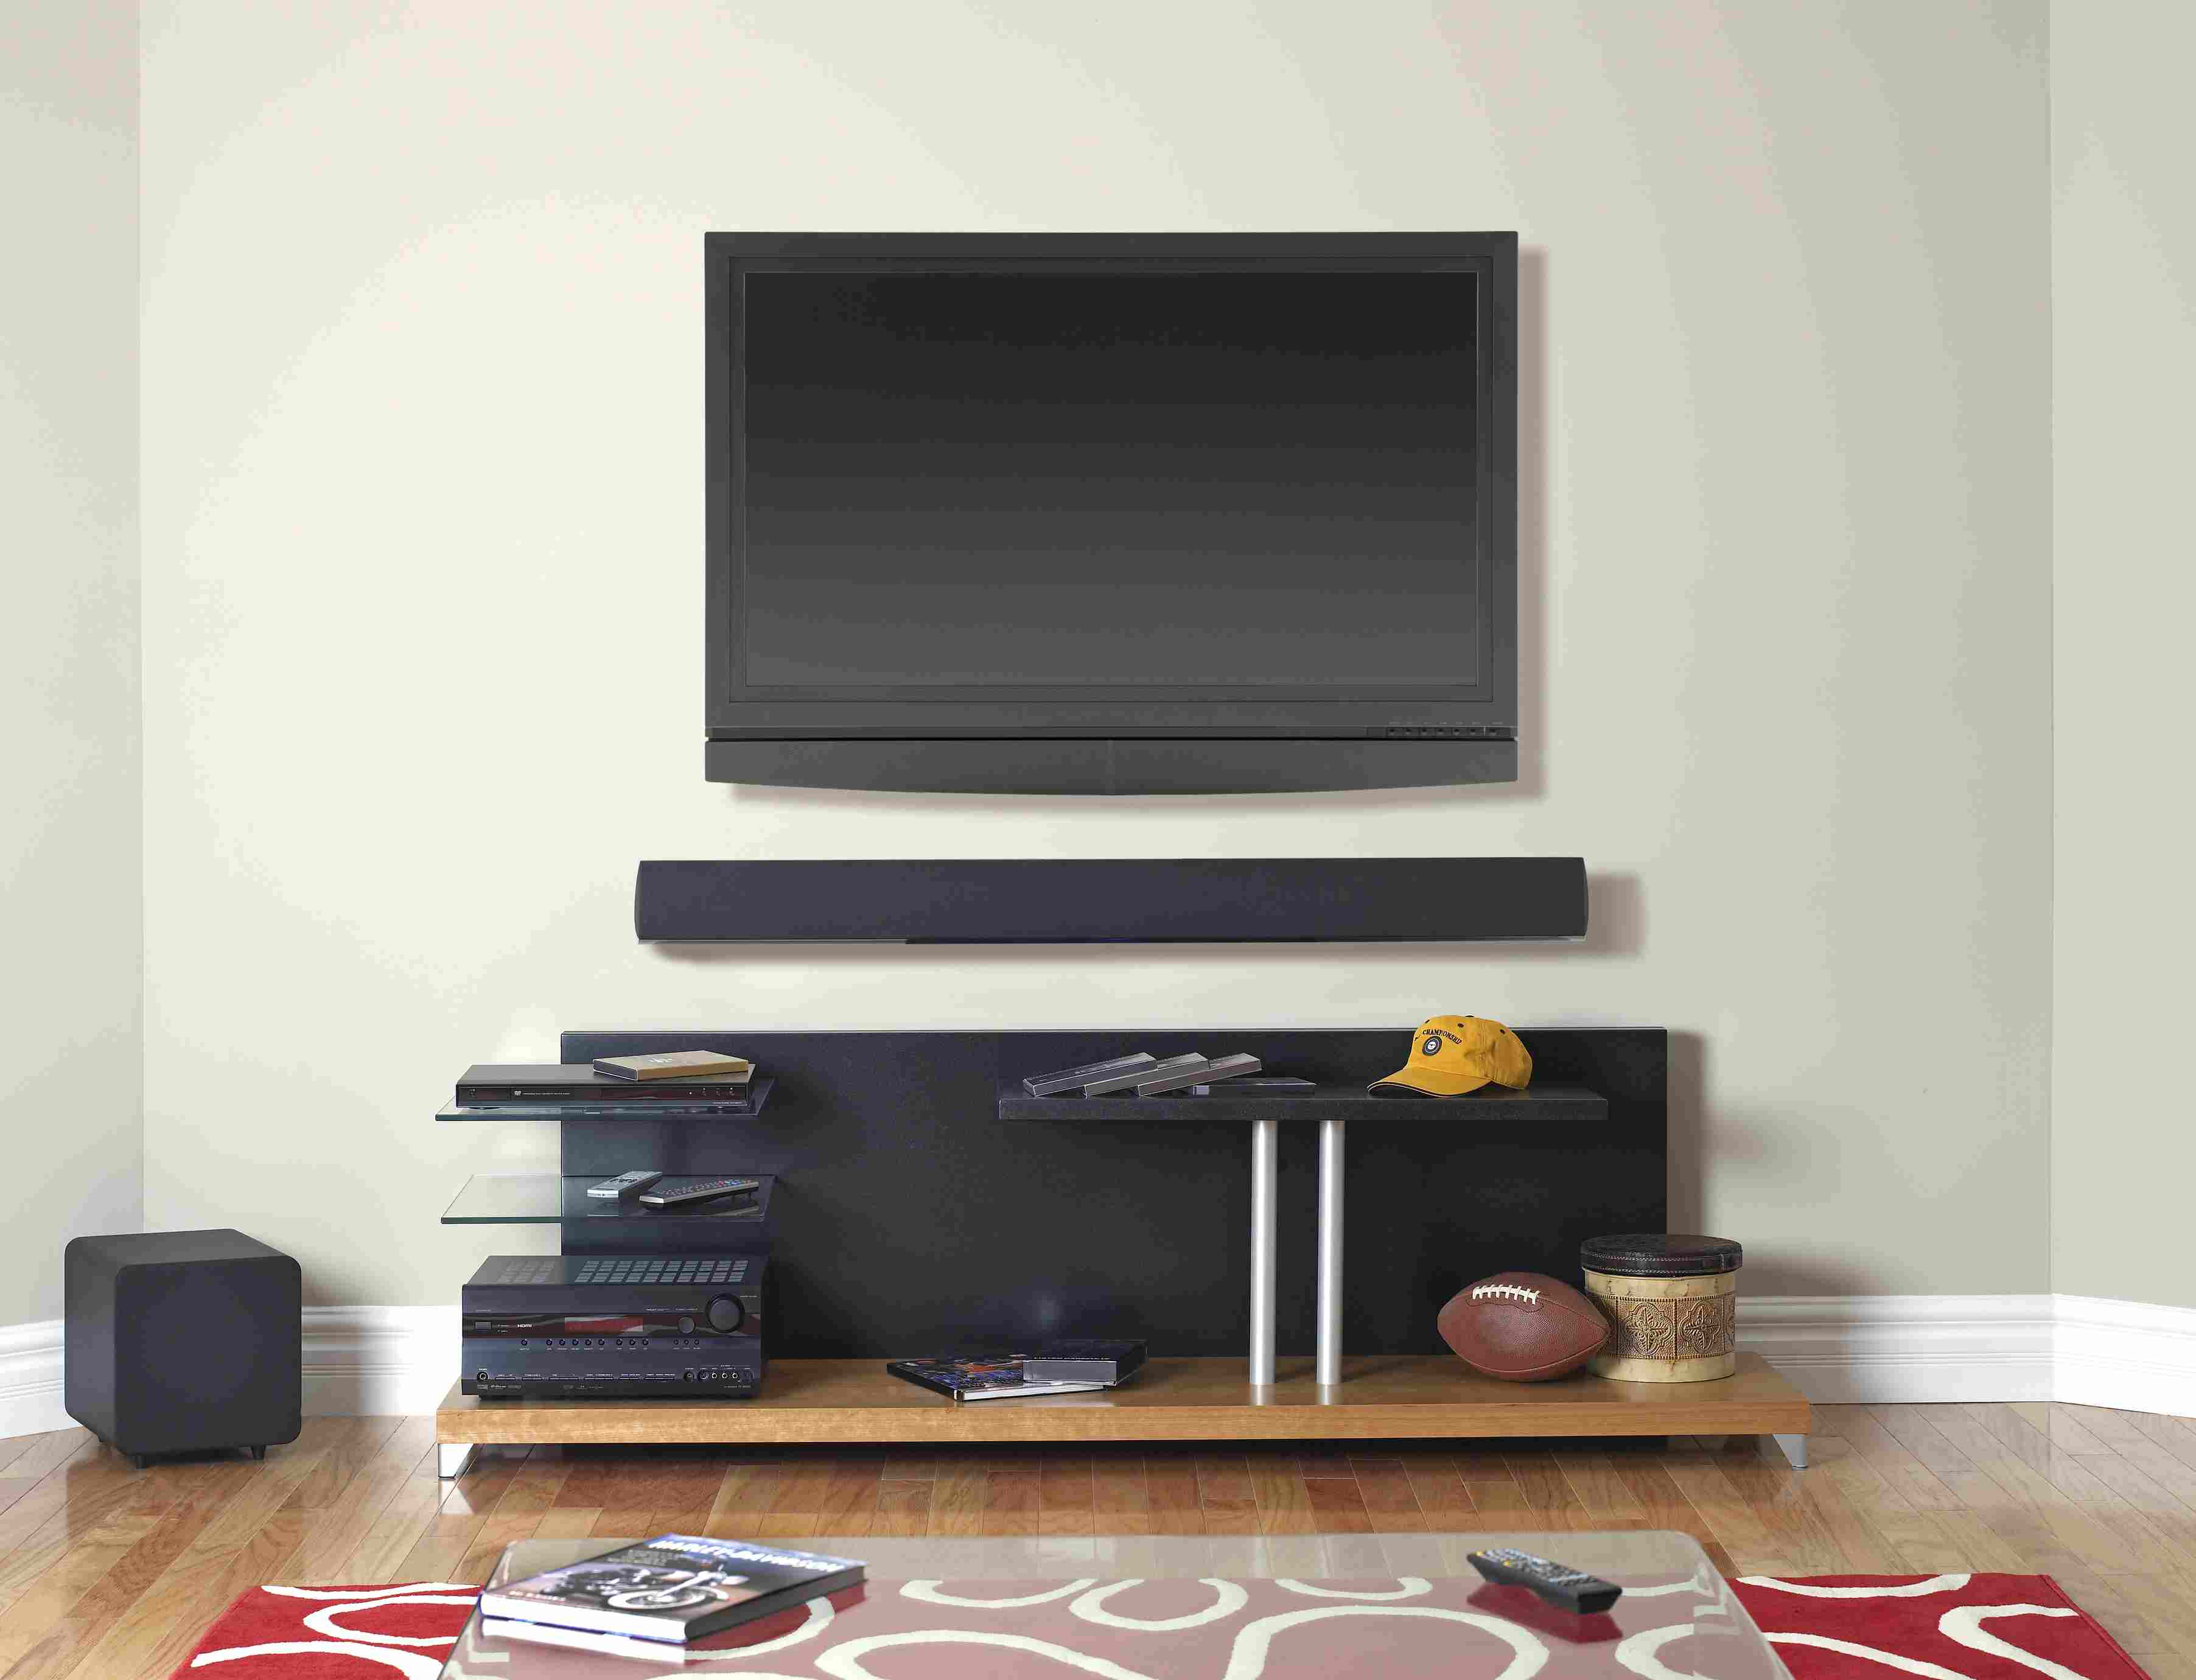 Directv Vs Dish Network An Overview